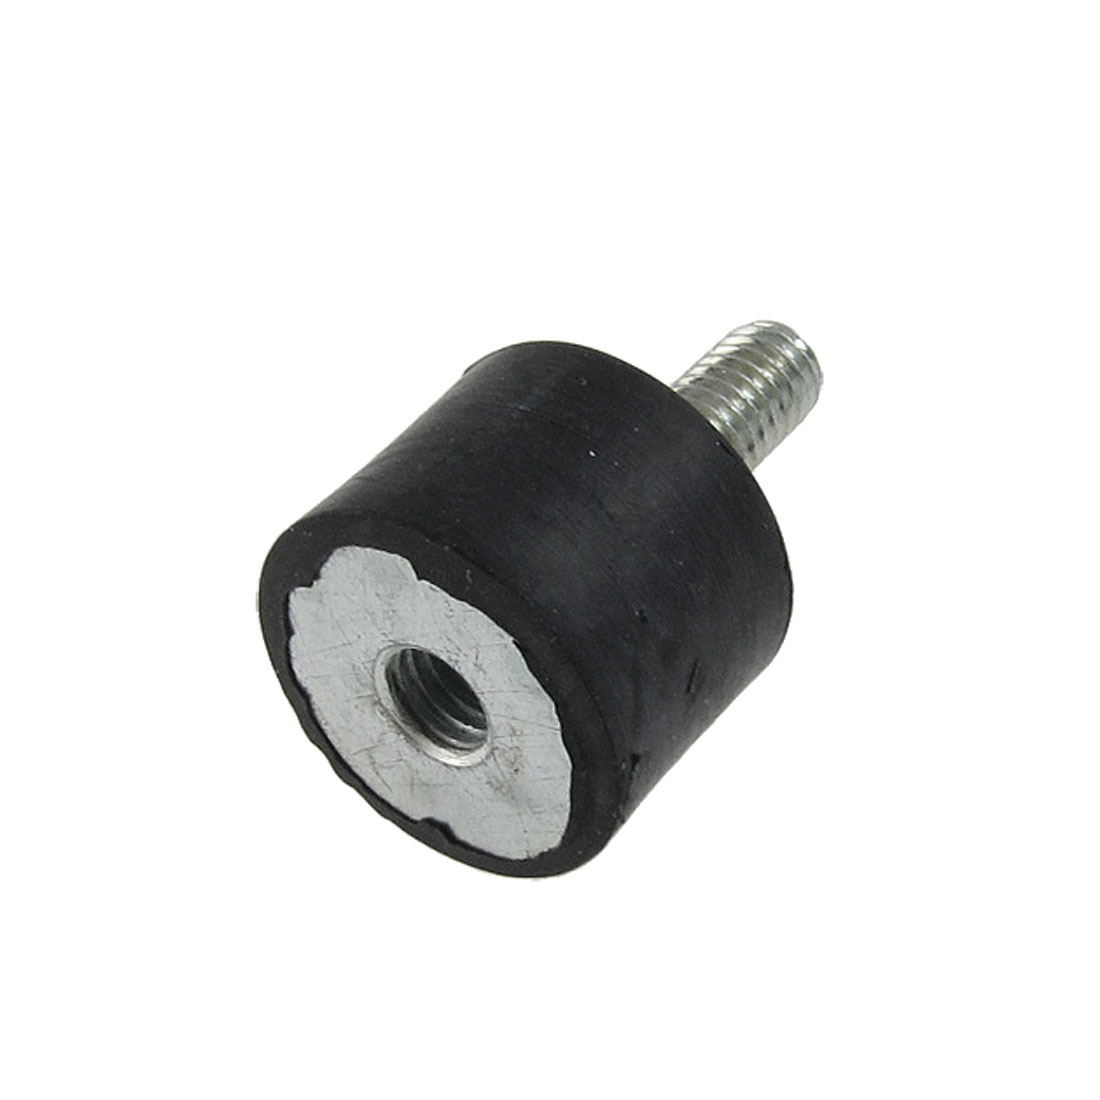 M6-Black-Silver-Tone-6mm-Dia-Male-Thread-Anti-Vibration-Rubber-Mount